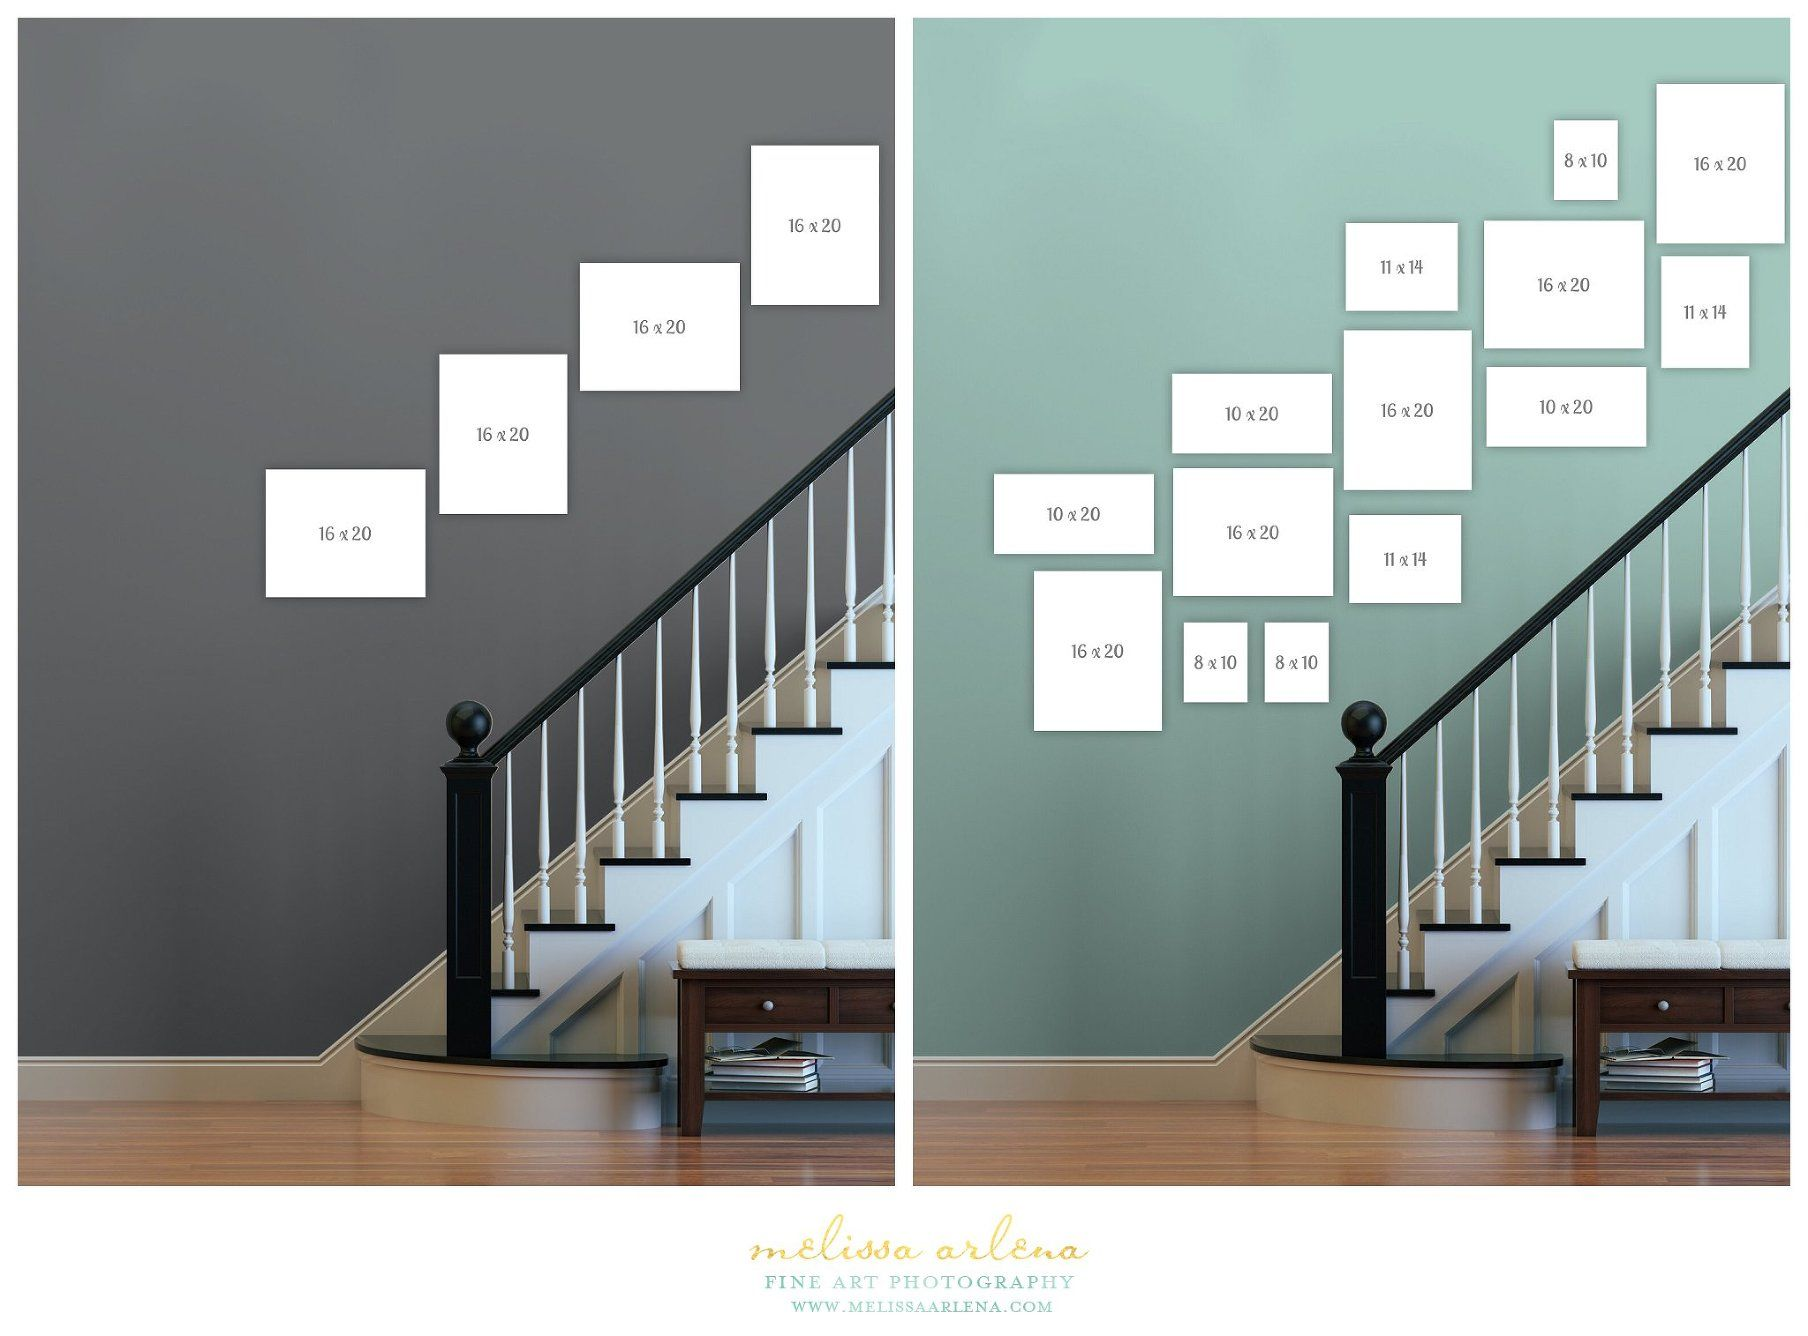 Decorating Your Home with Photos – My Staircase Gallery #picturewallideas